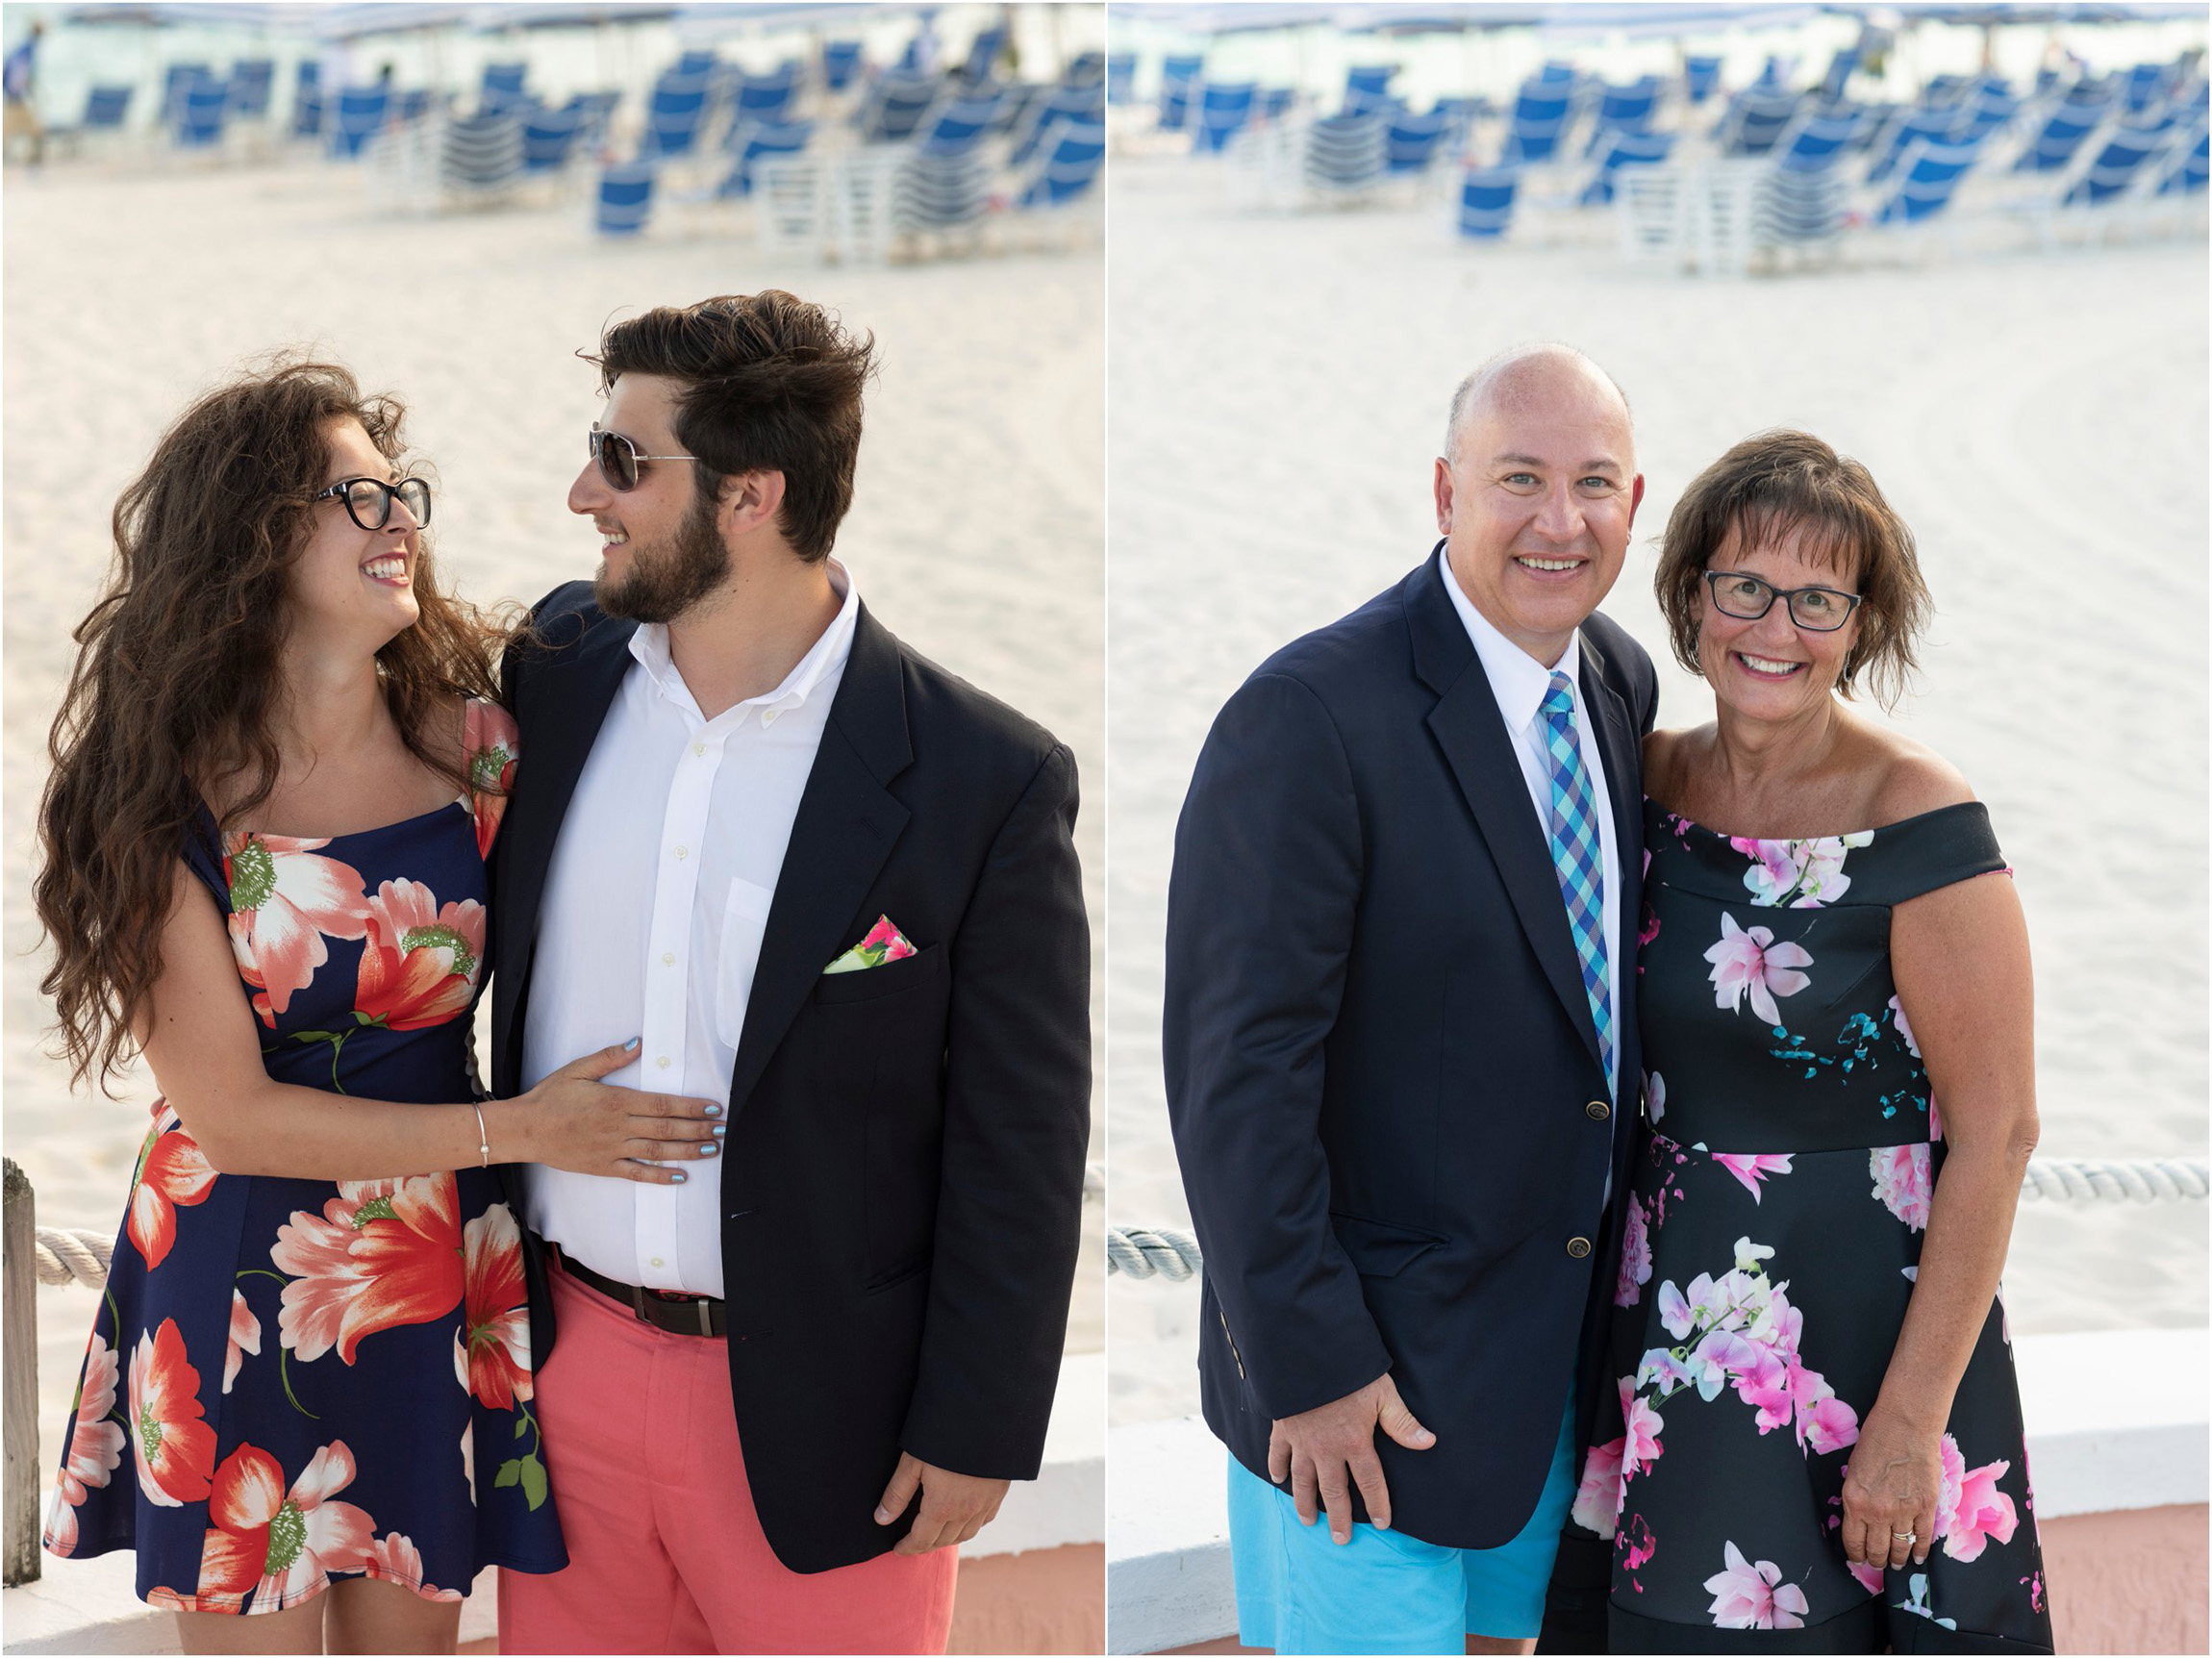 ©FianderFoto_Bermuda Wedding Photographer_Fairmont Southampton_Wedding_Anna_Thomas_068.jpg